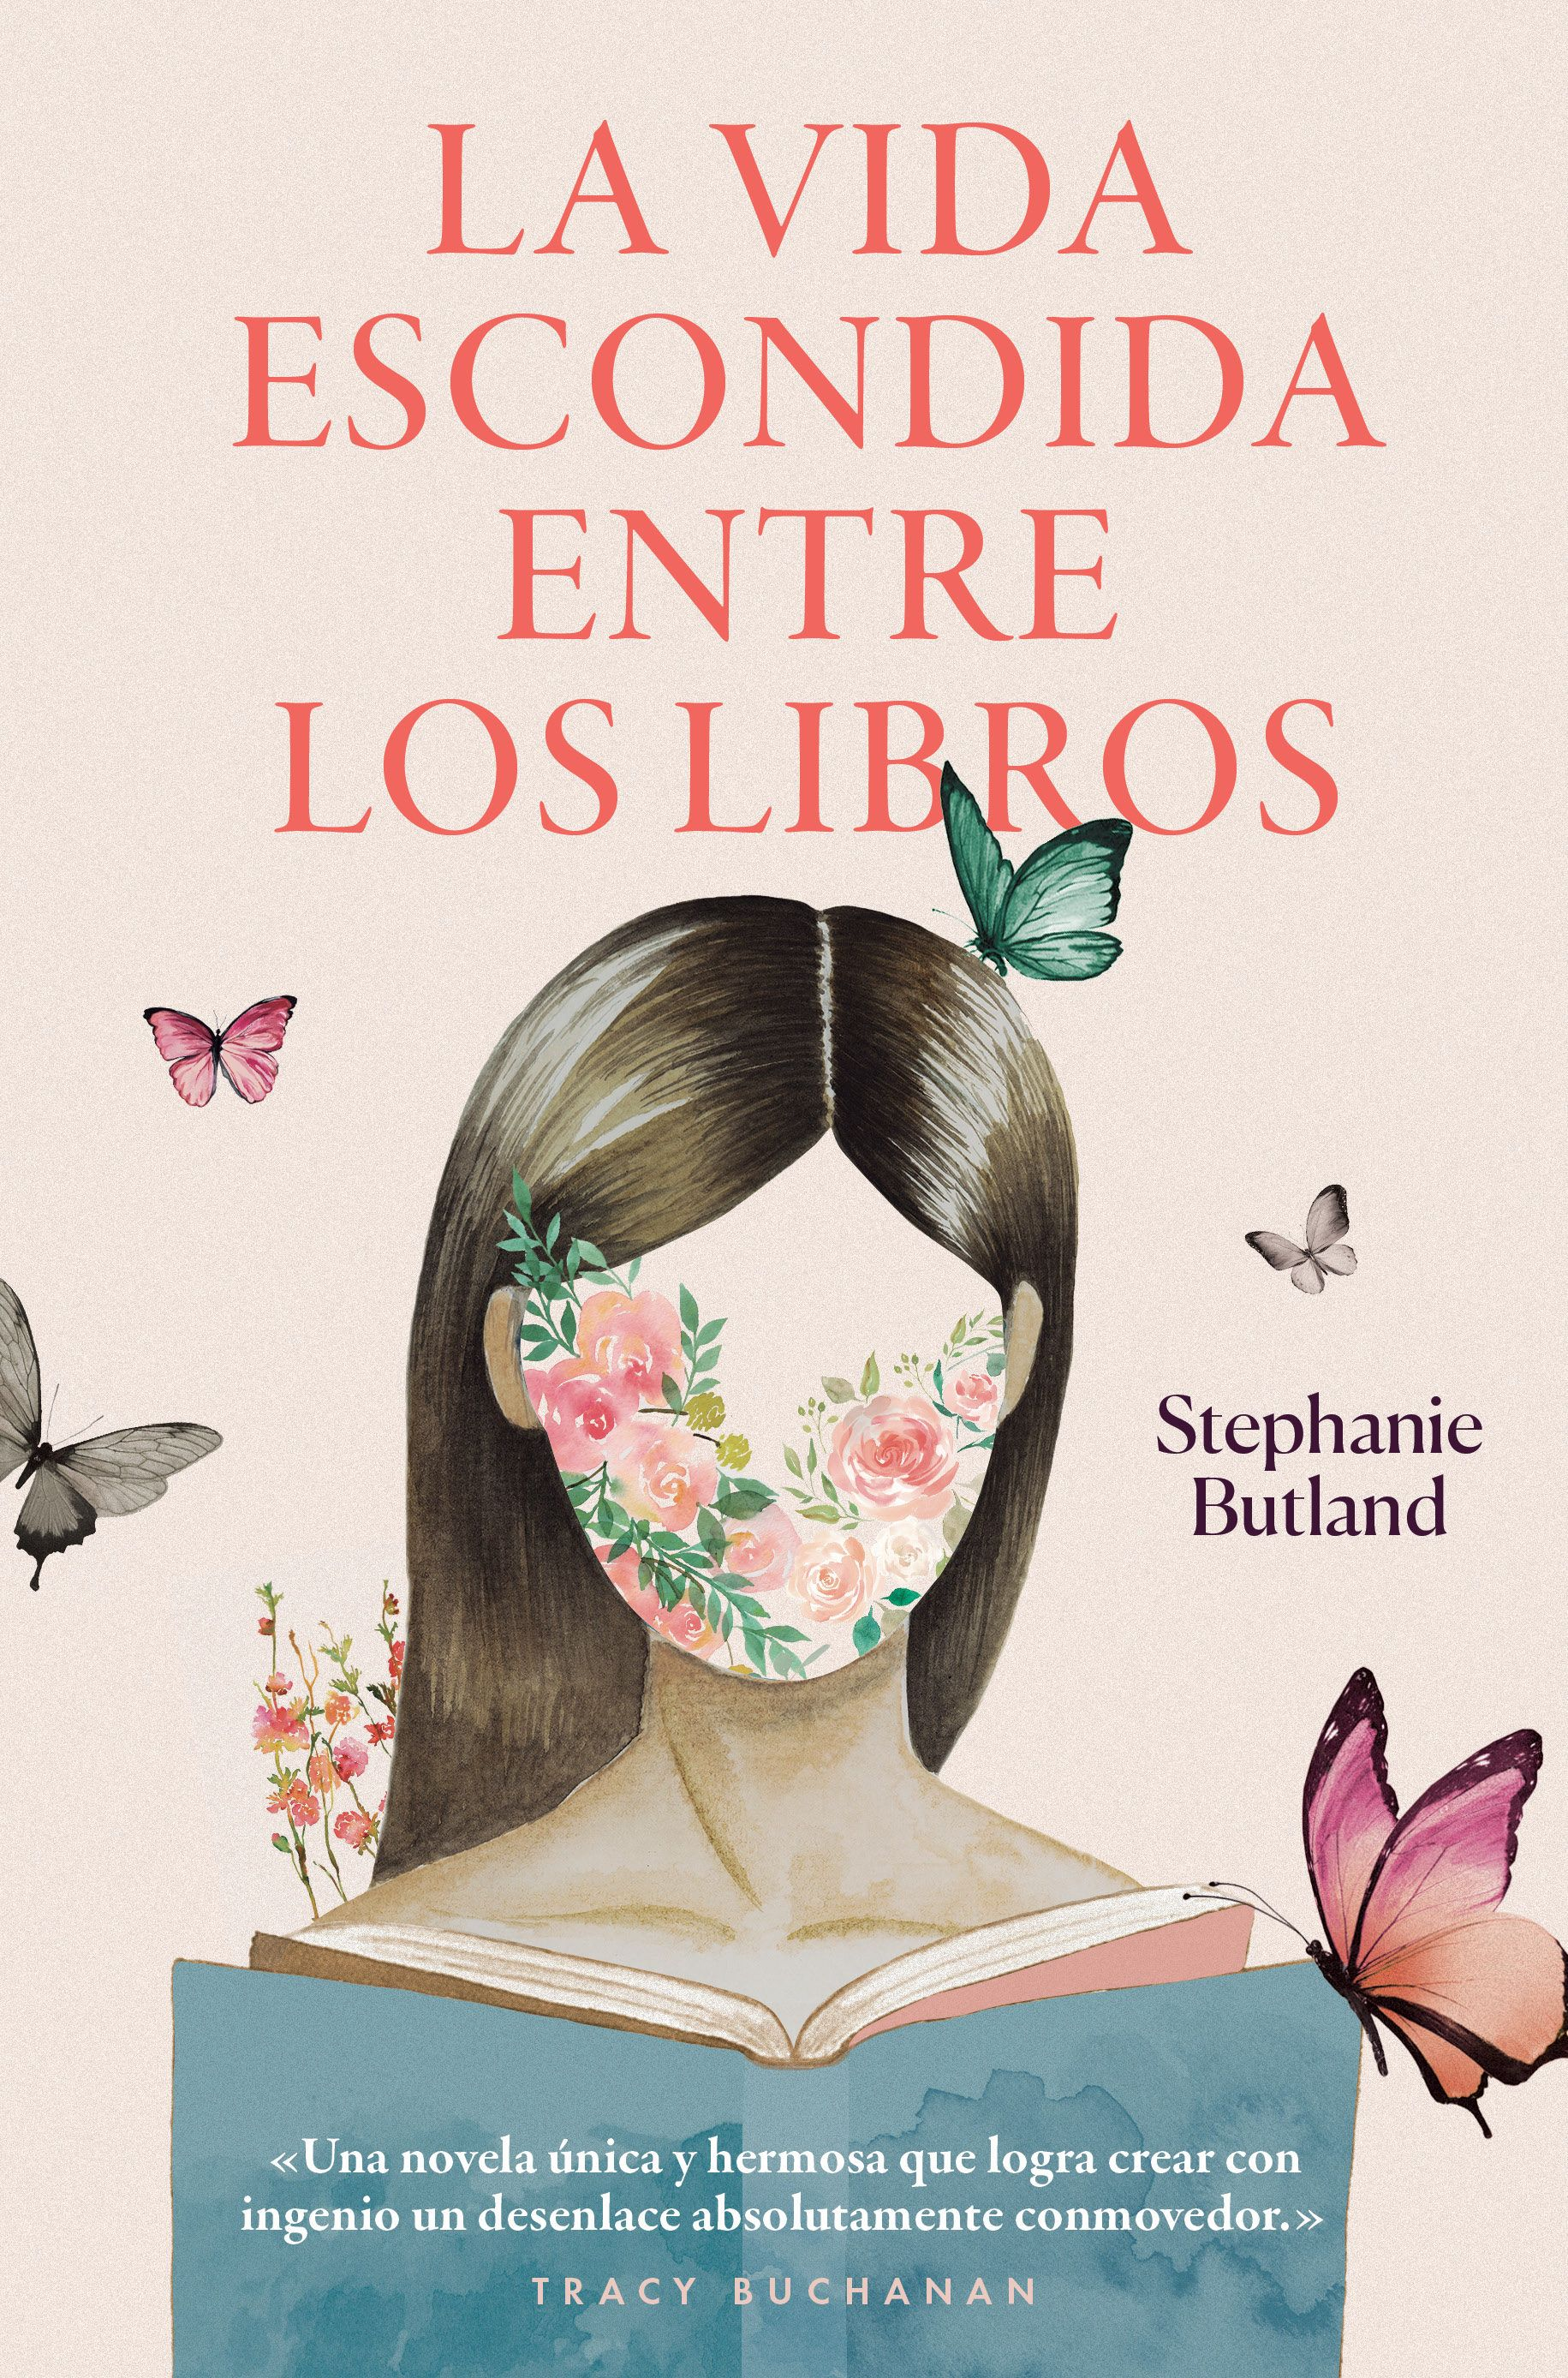 Libros Para Leer Sobre La Vida Apirila 2018 Abril Libros Book Club Books Books Y English Book